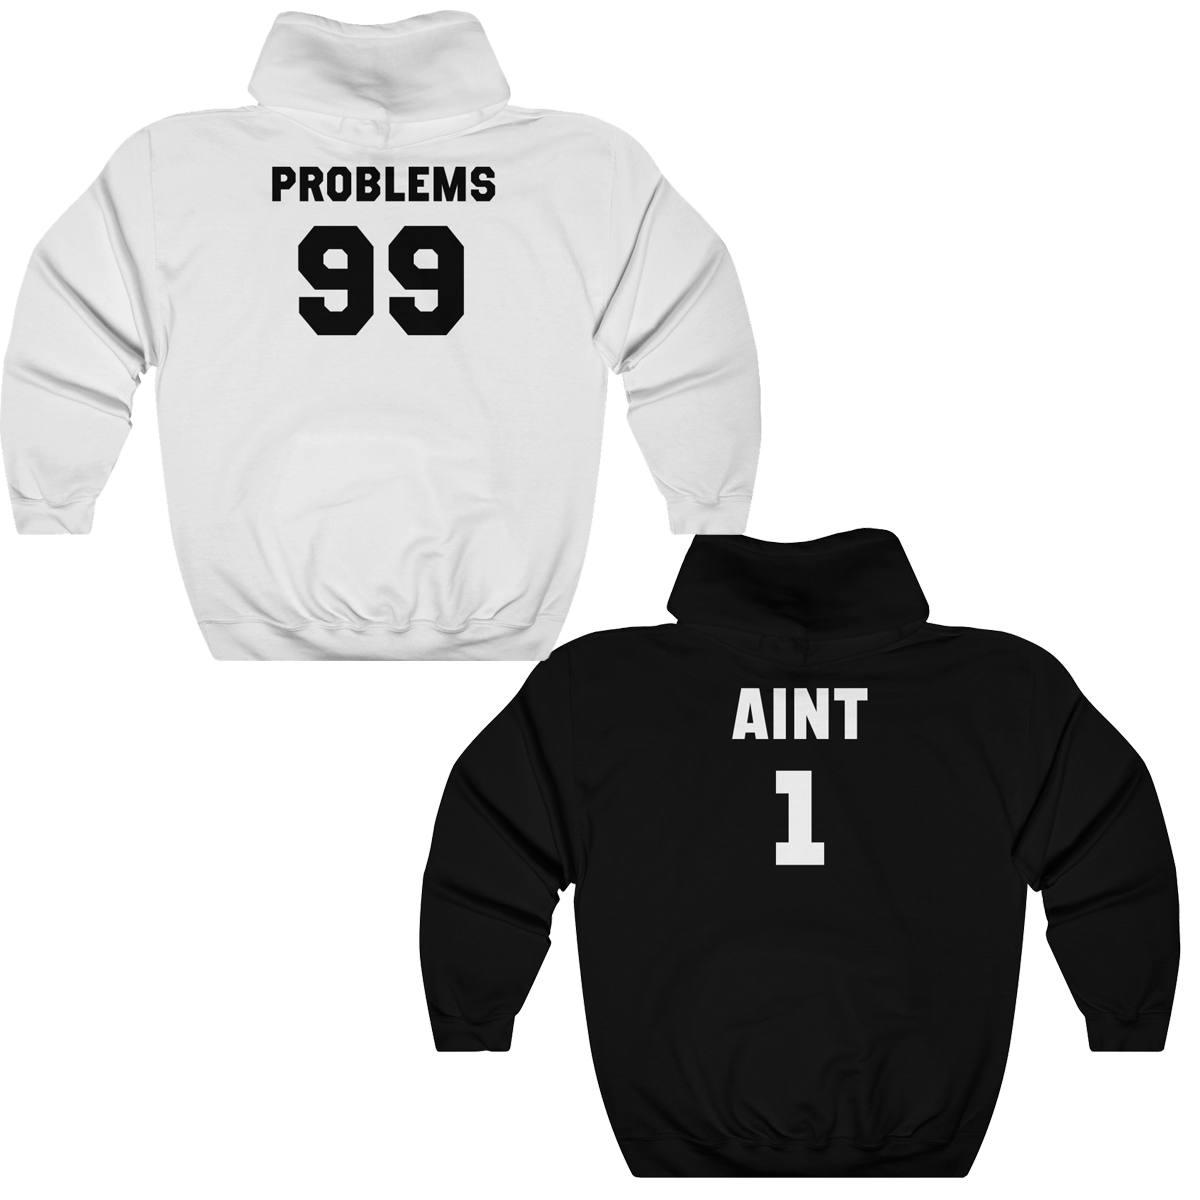 99 Problems Ain't 1 Back Couples Hoodies